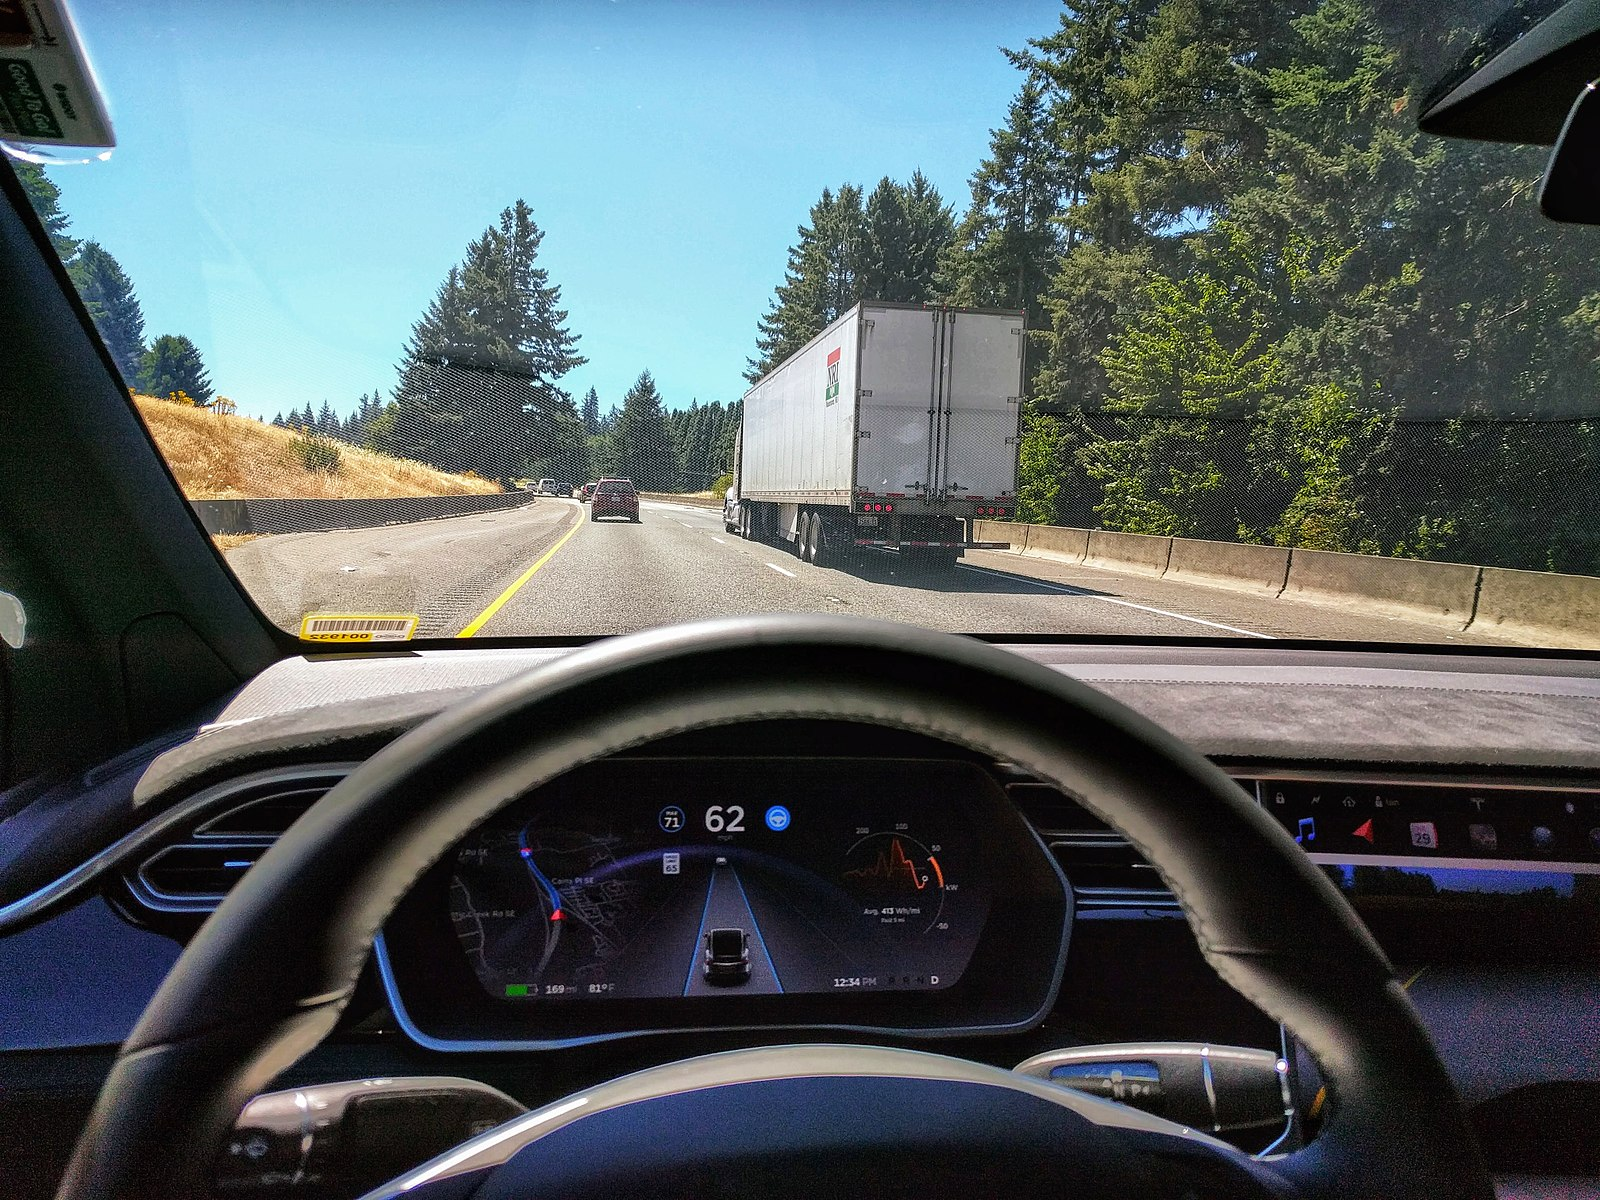 Difference Between Autopilot and Full Self-Driving